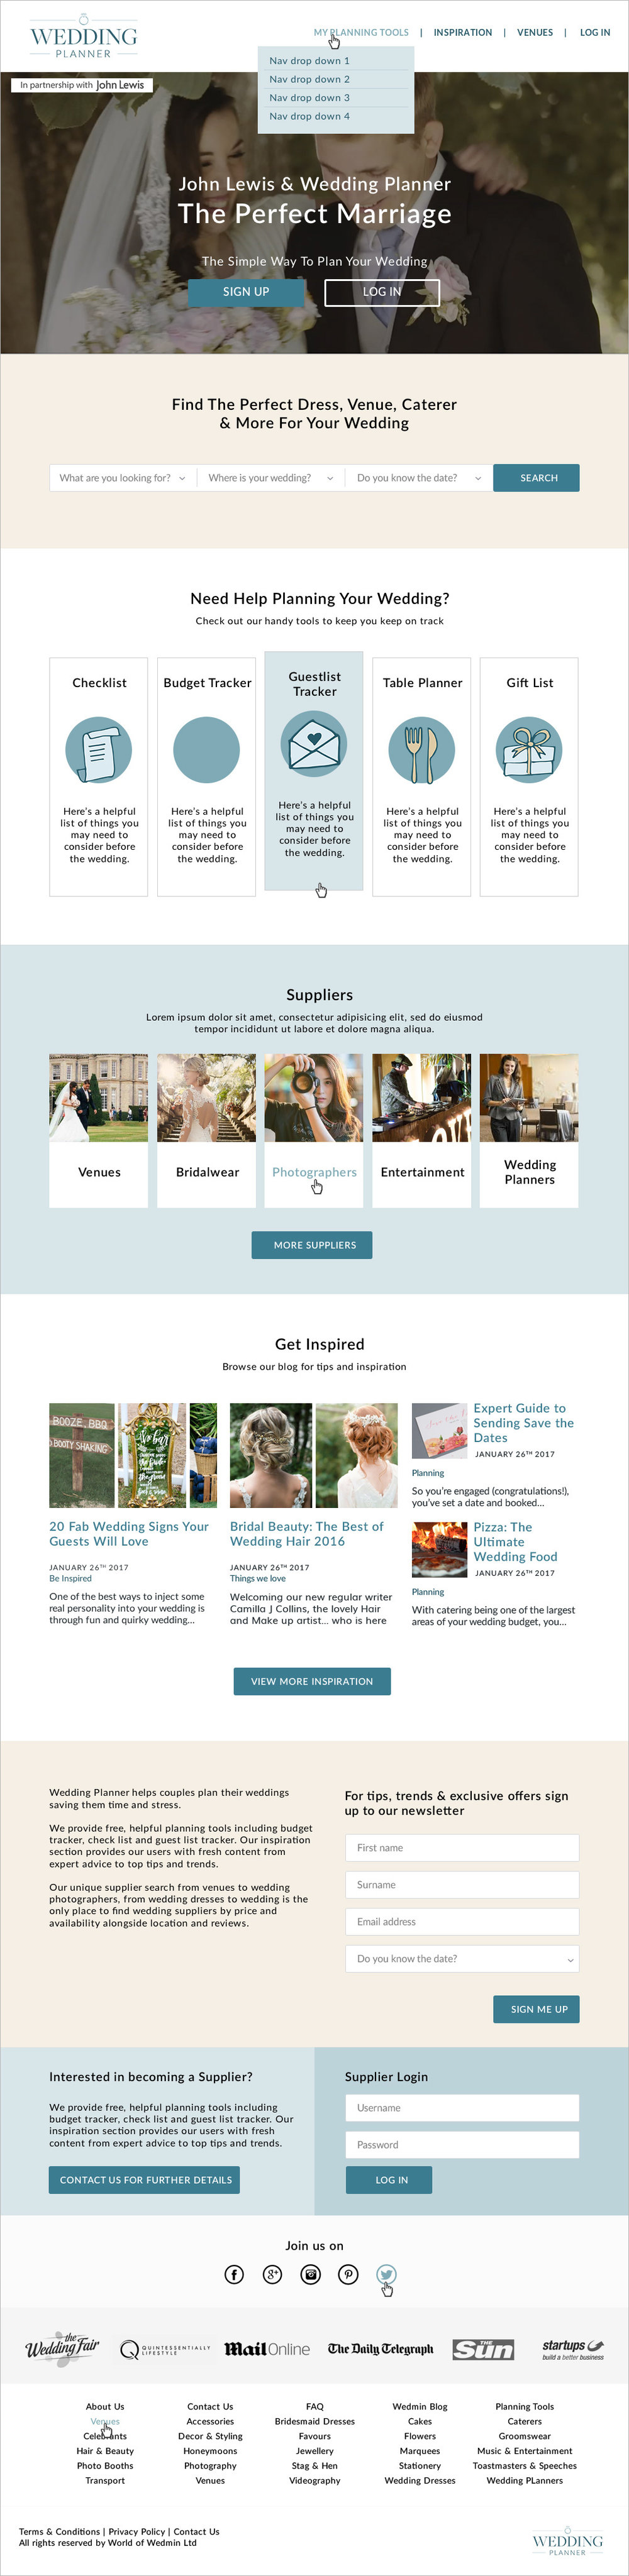 Krishna Solanki Designs - WeddingPlanner Homepage Redesign